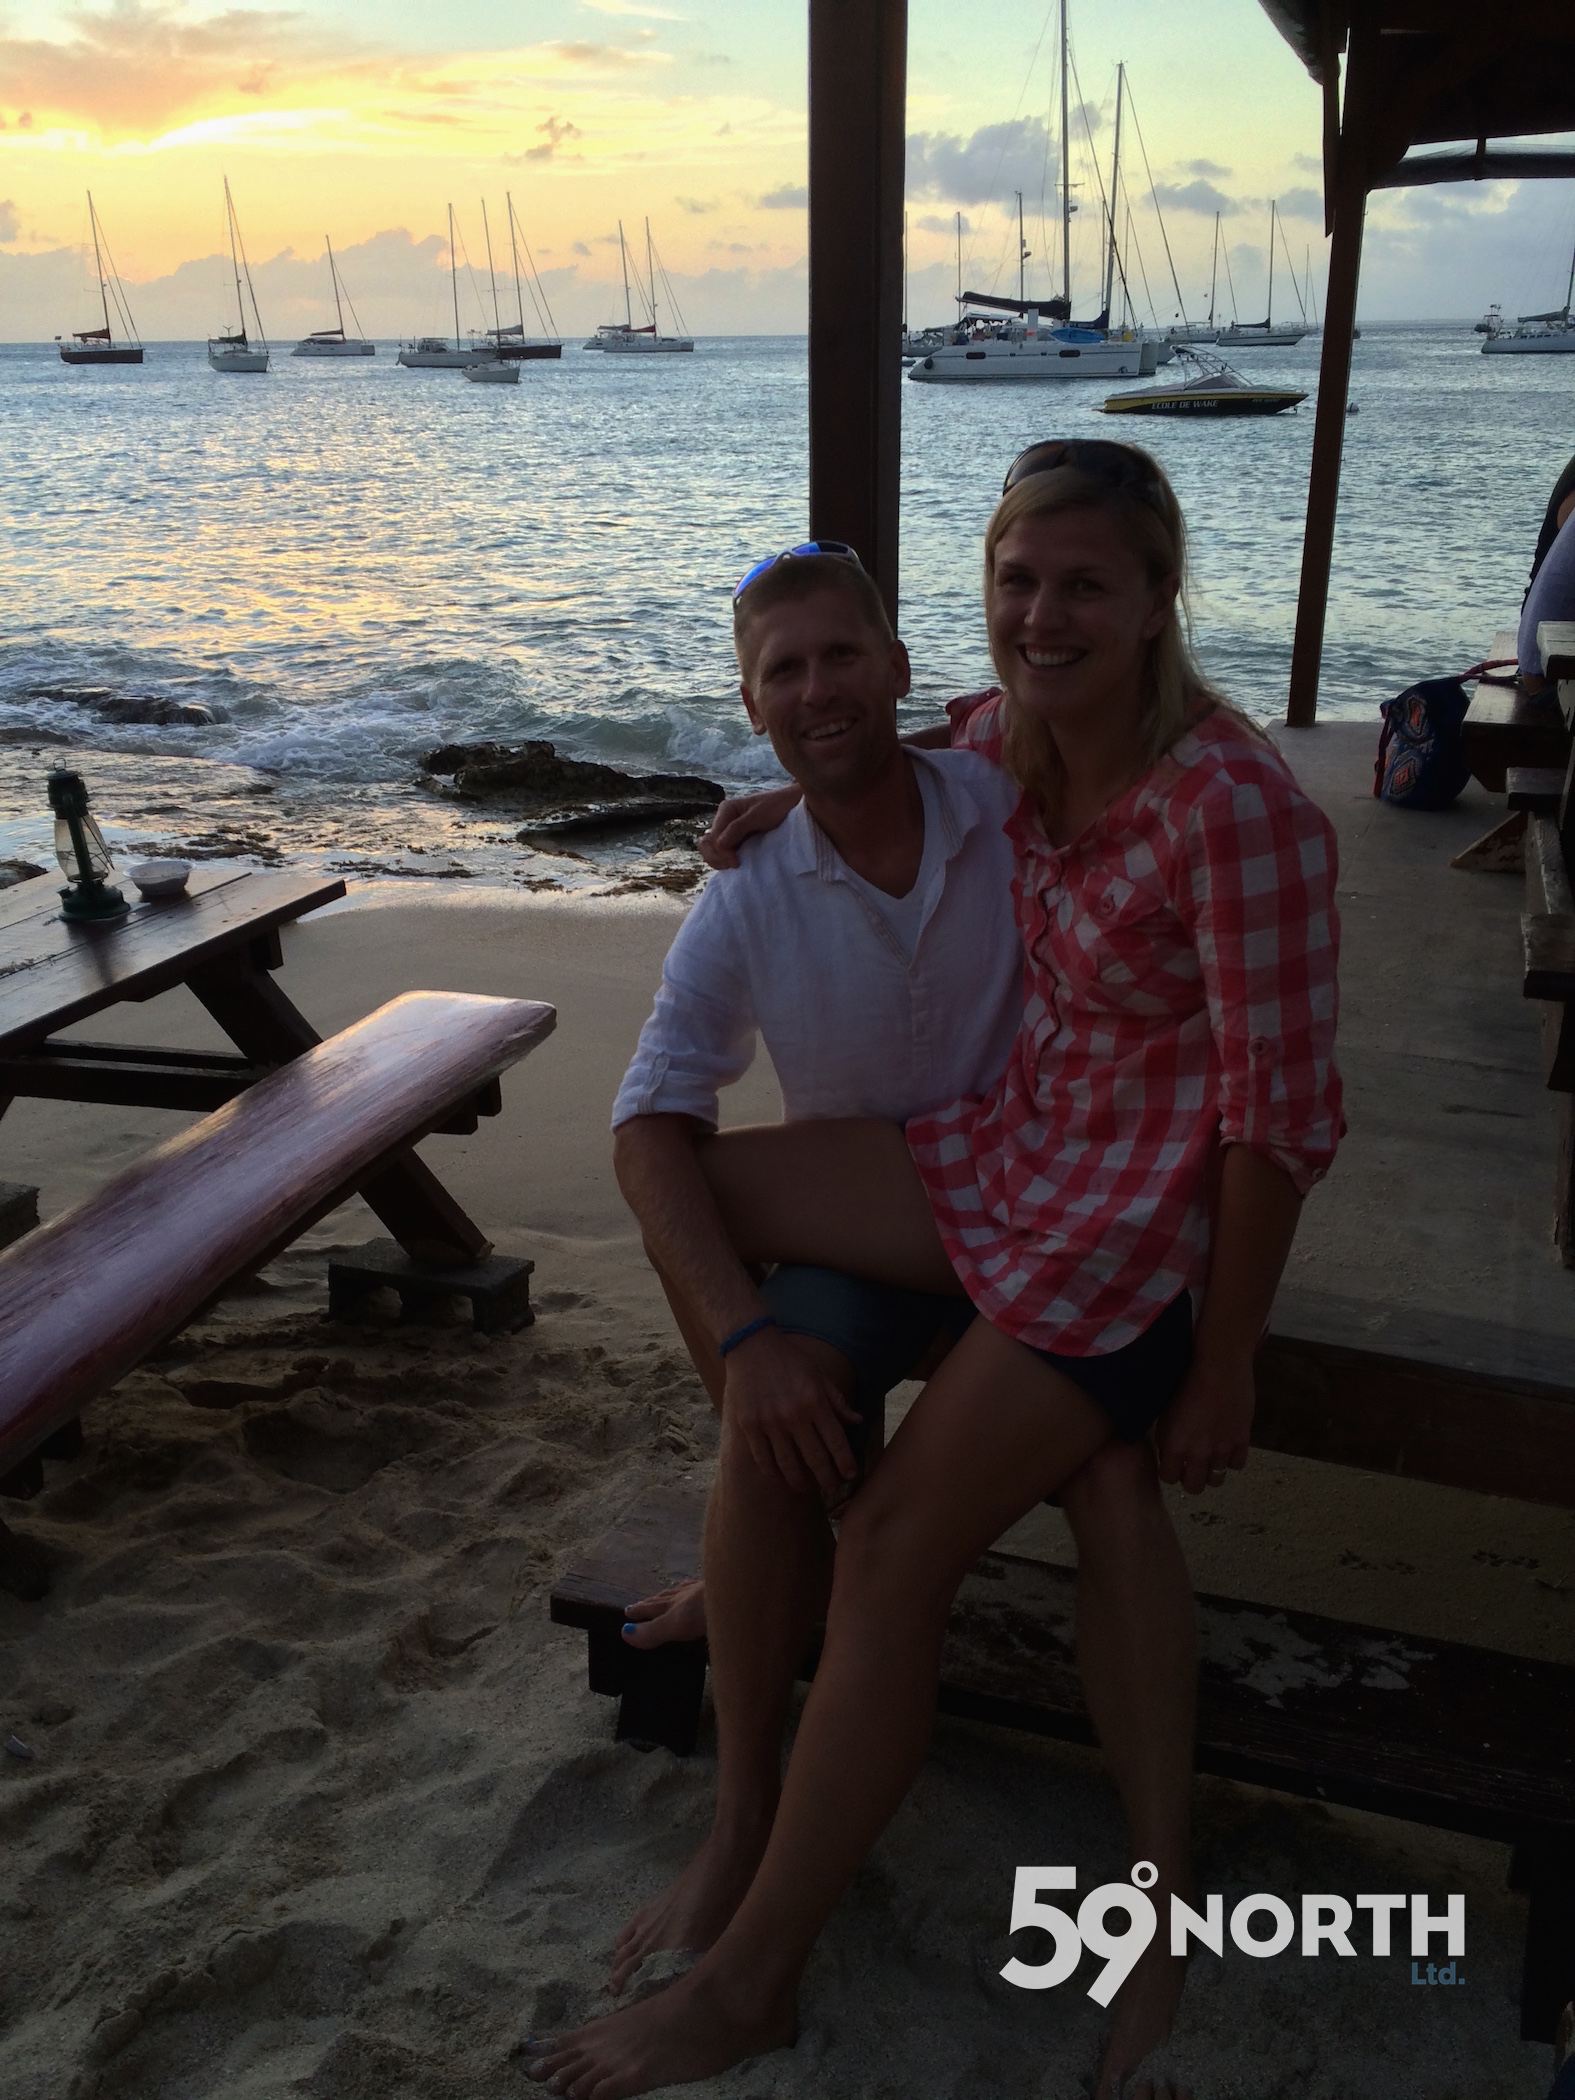 Back in Grand Case, St. Martin. We haven't been here since our Broadreach days in 2009! March 2016